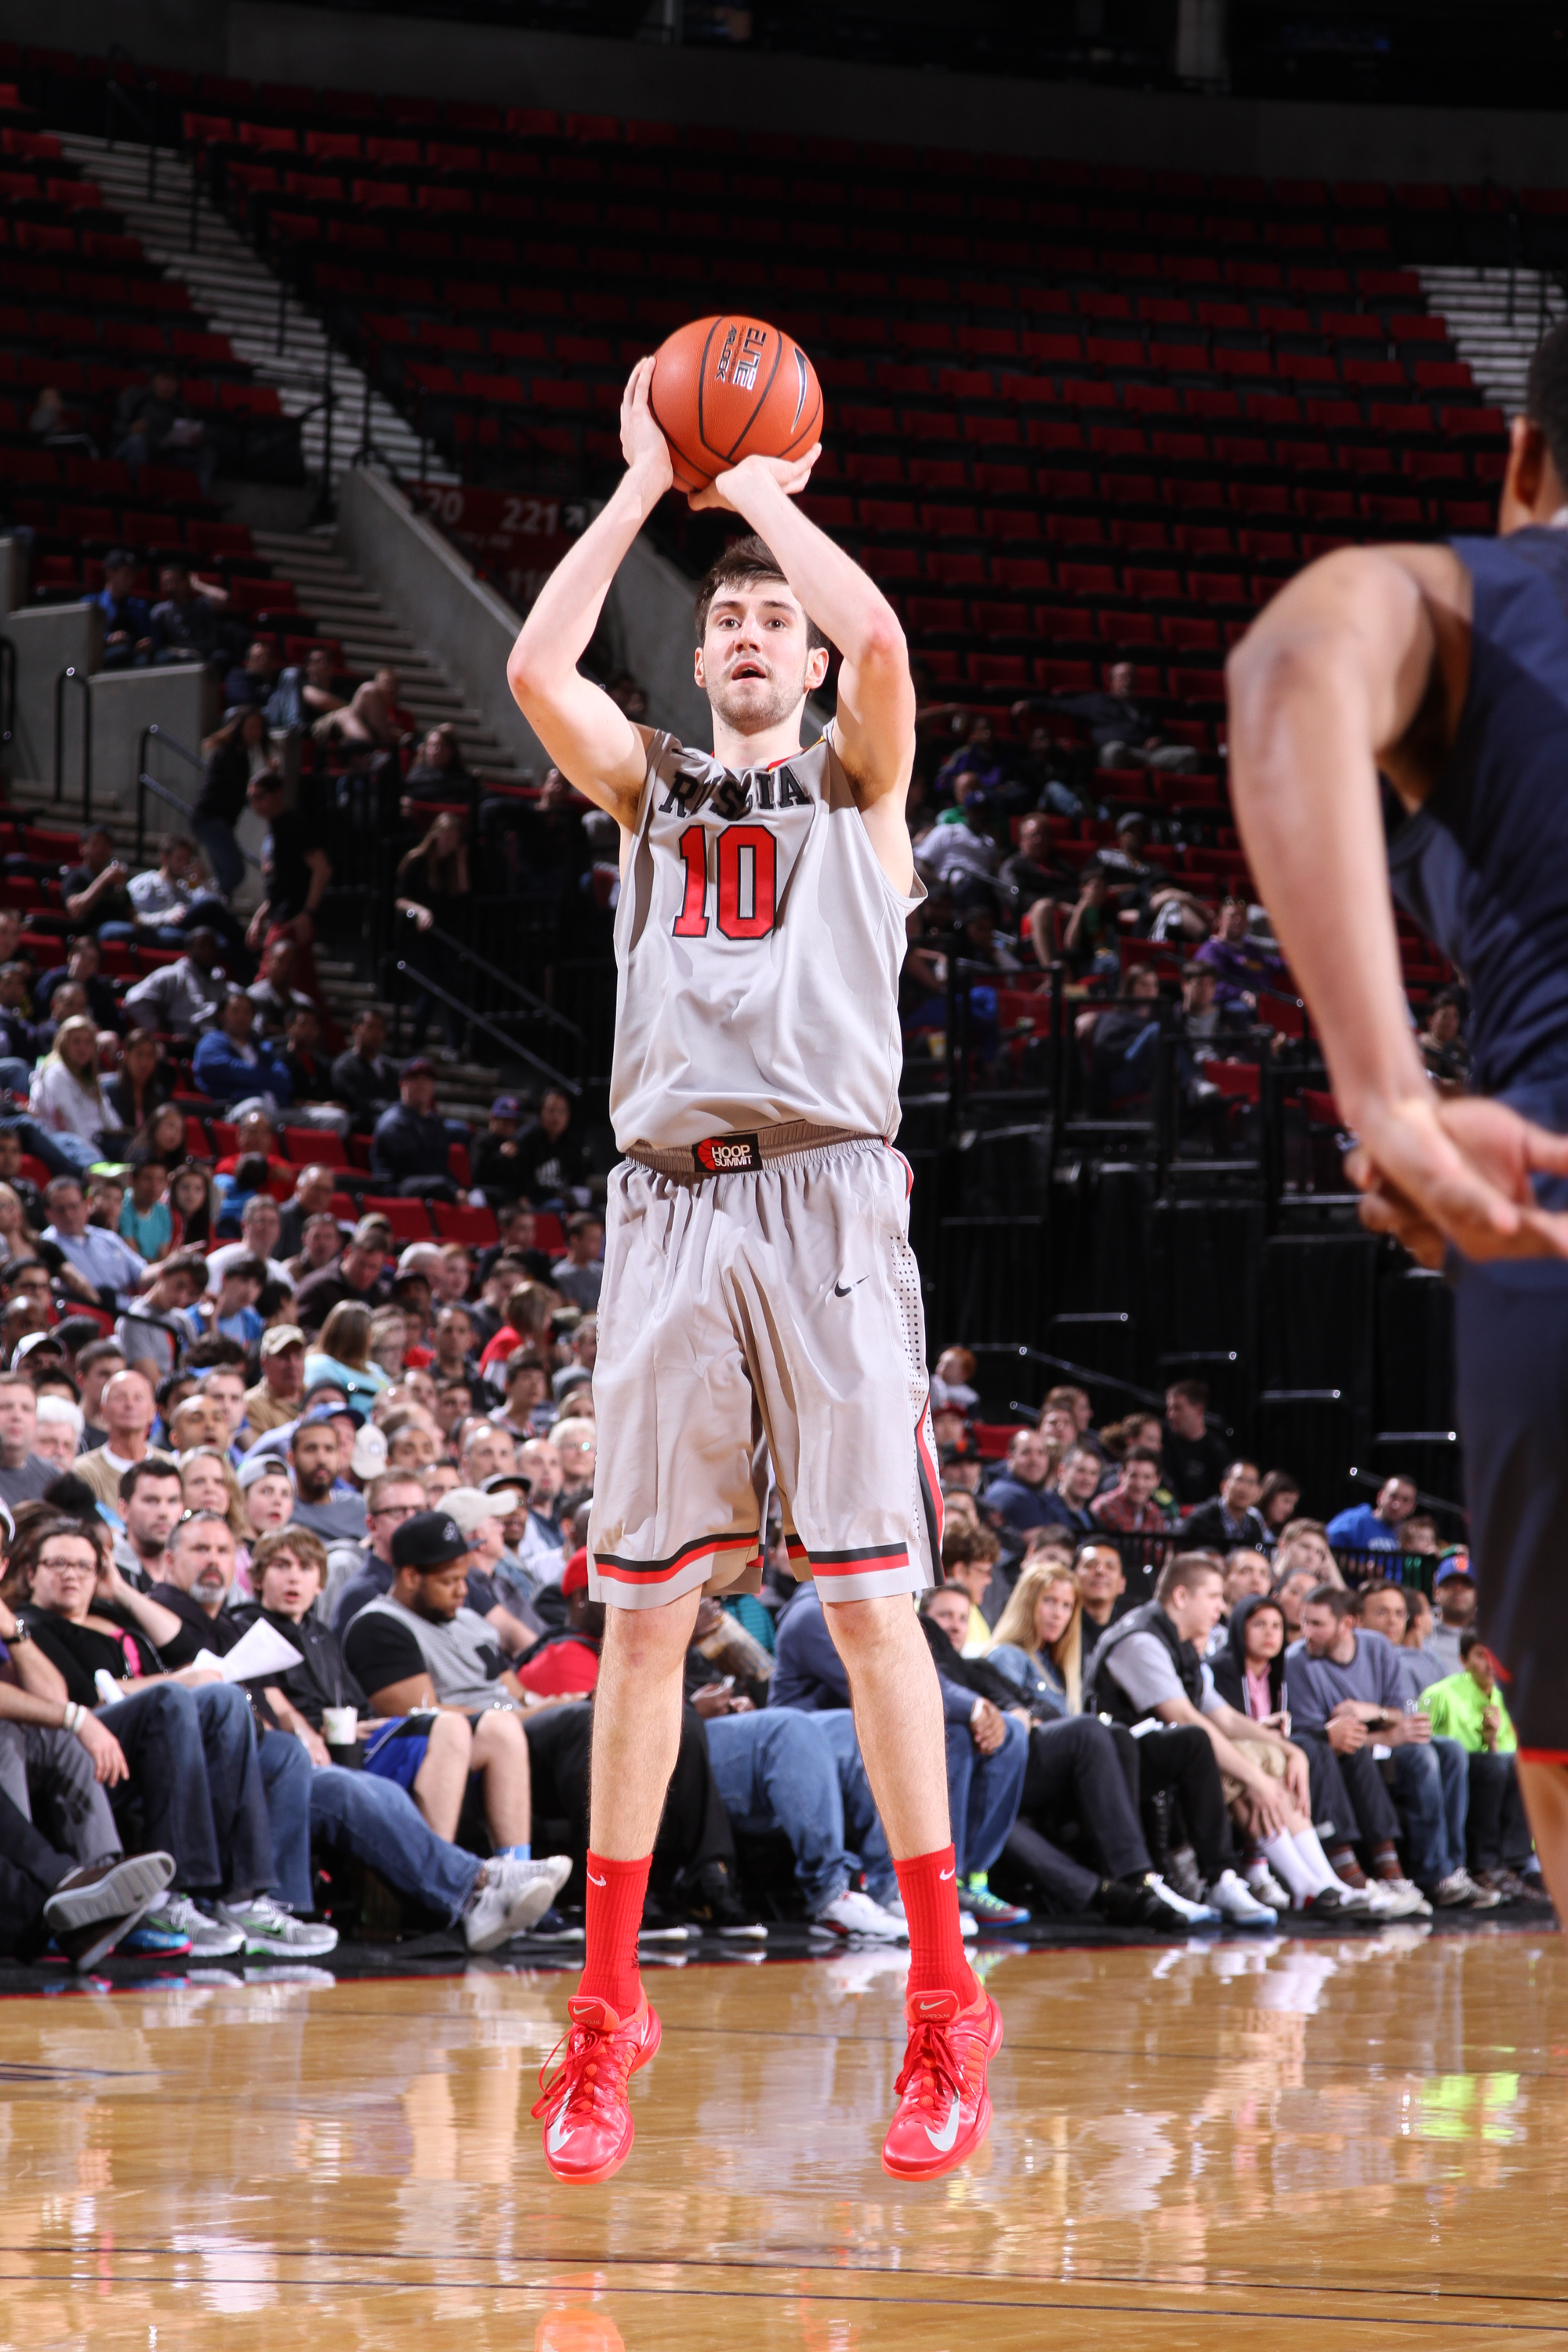 Sergey Karasev played for the world team in the Hoop Summit. (Getty Images)